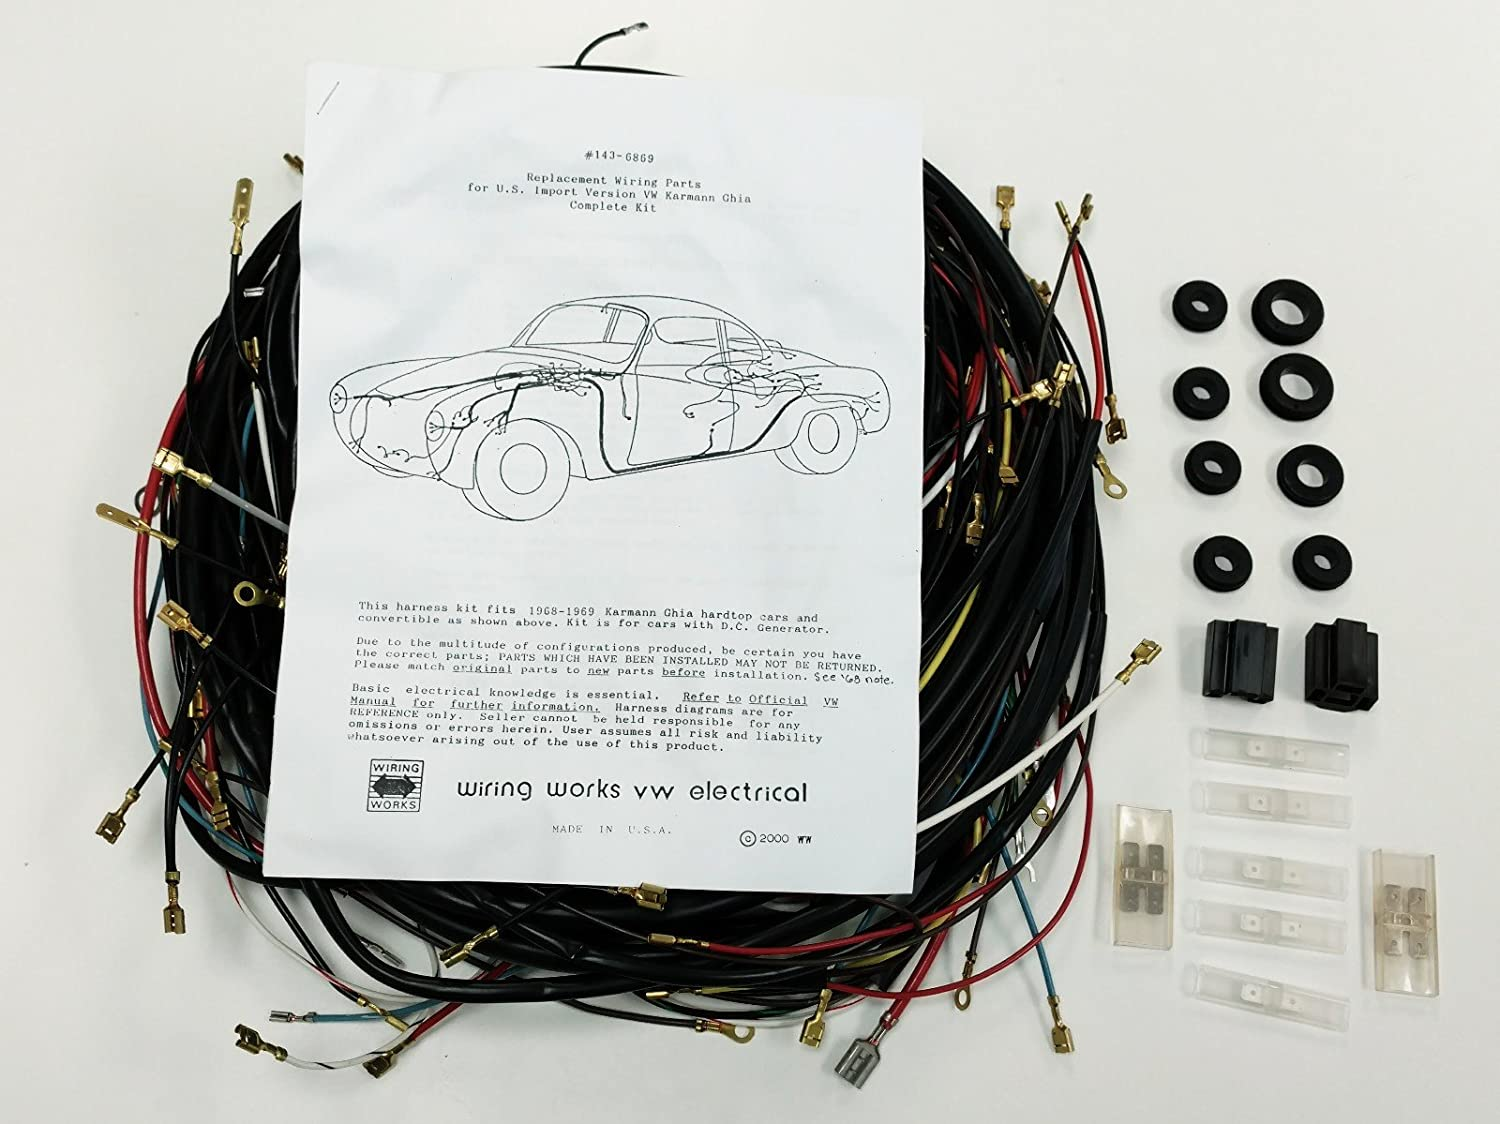 1968 1969 All Karmann Ghia Vw Complete Wiring Works Wire Harness Kit Usa Made Automotive